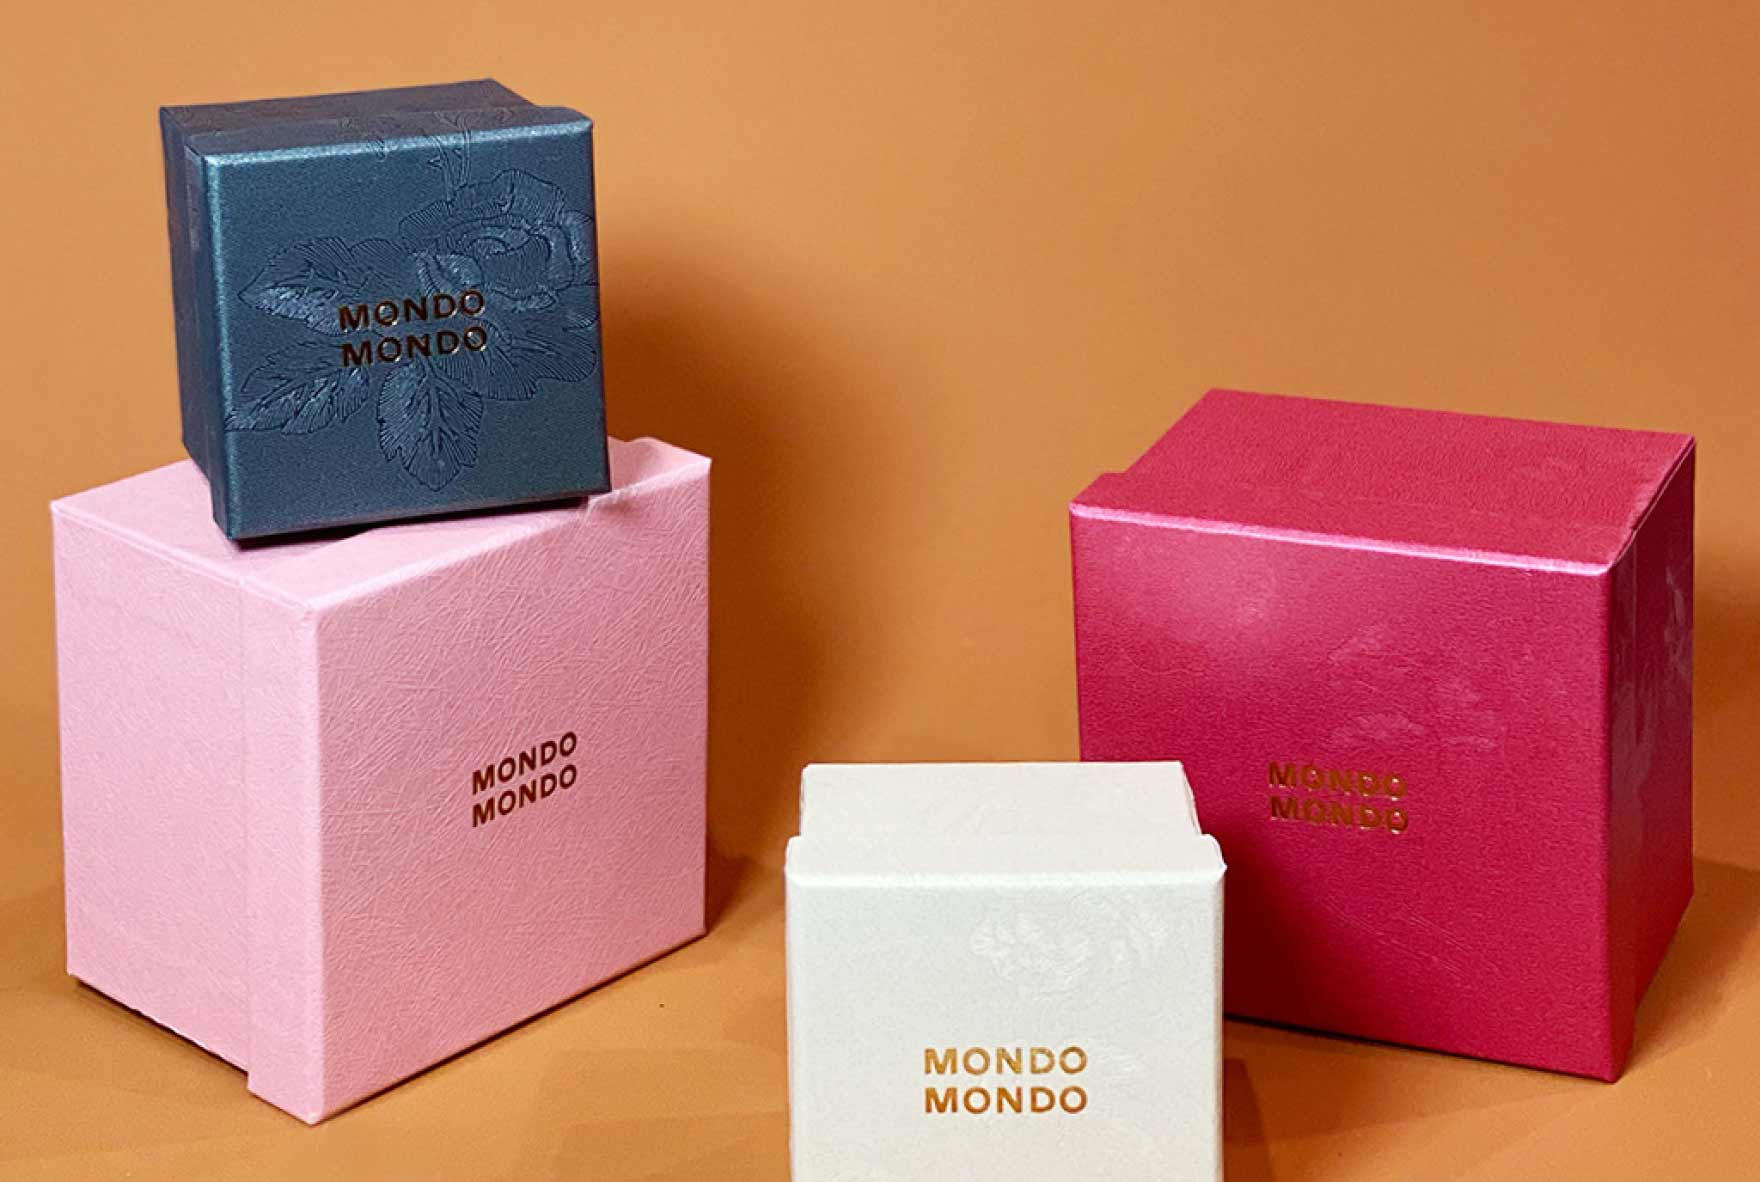 Shop Mondo Mondo at Camargue